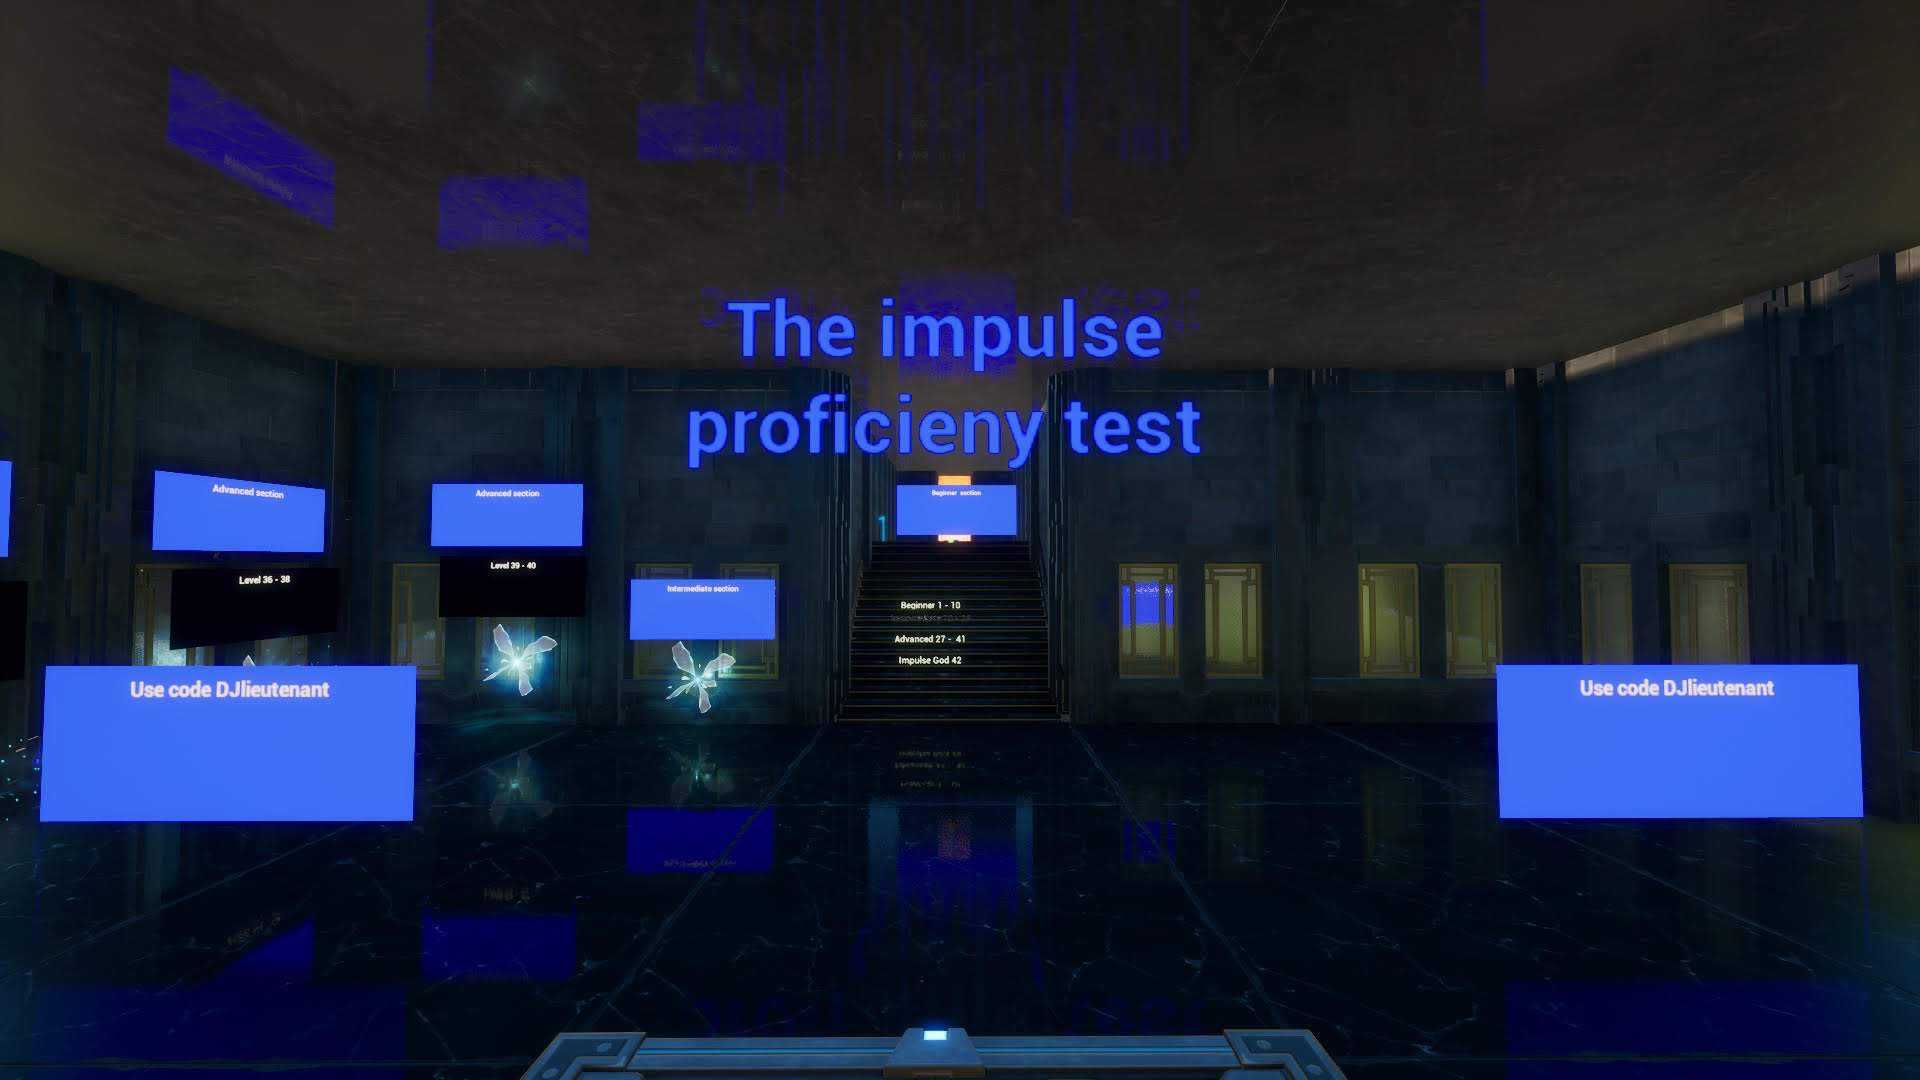 THE IMPULSE PROFICIENY TEST